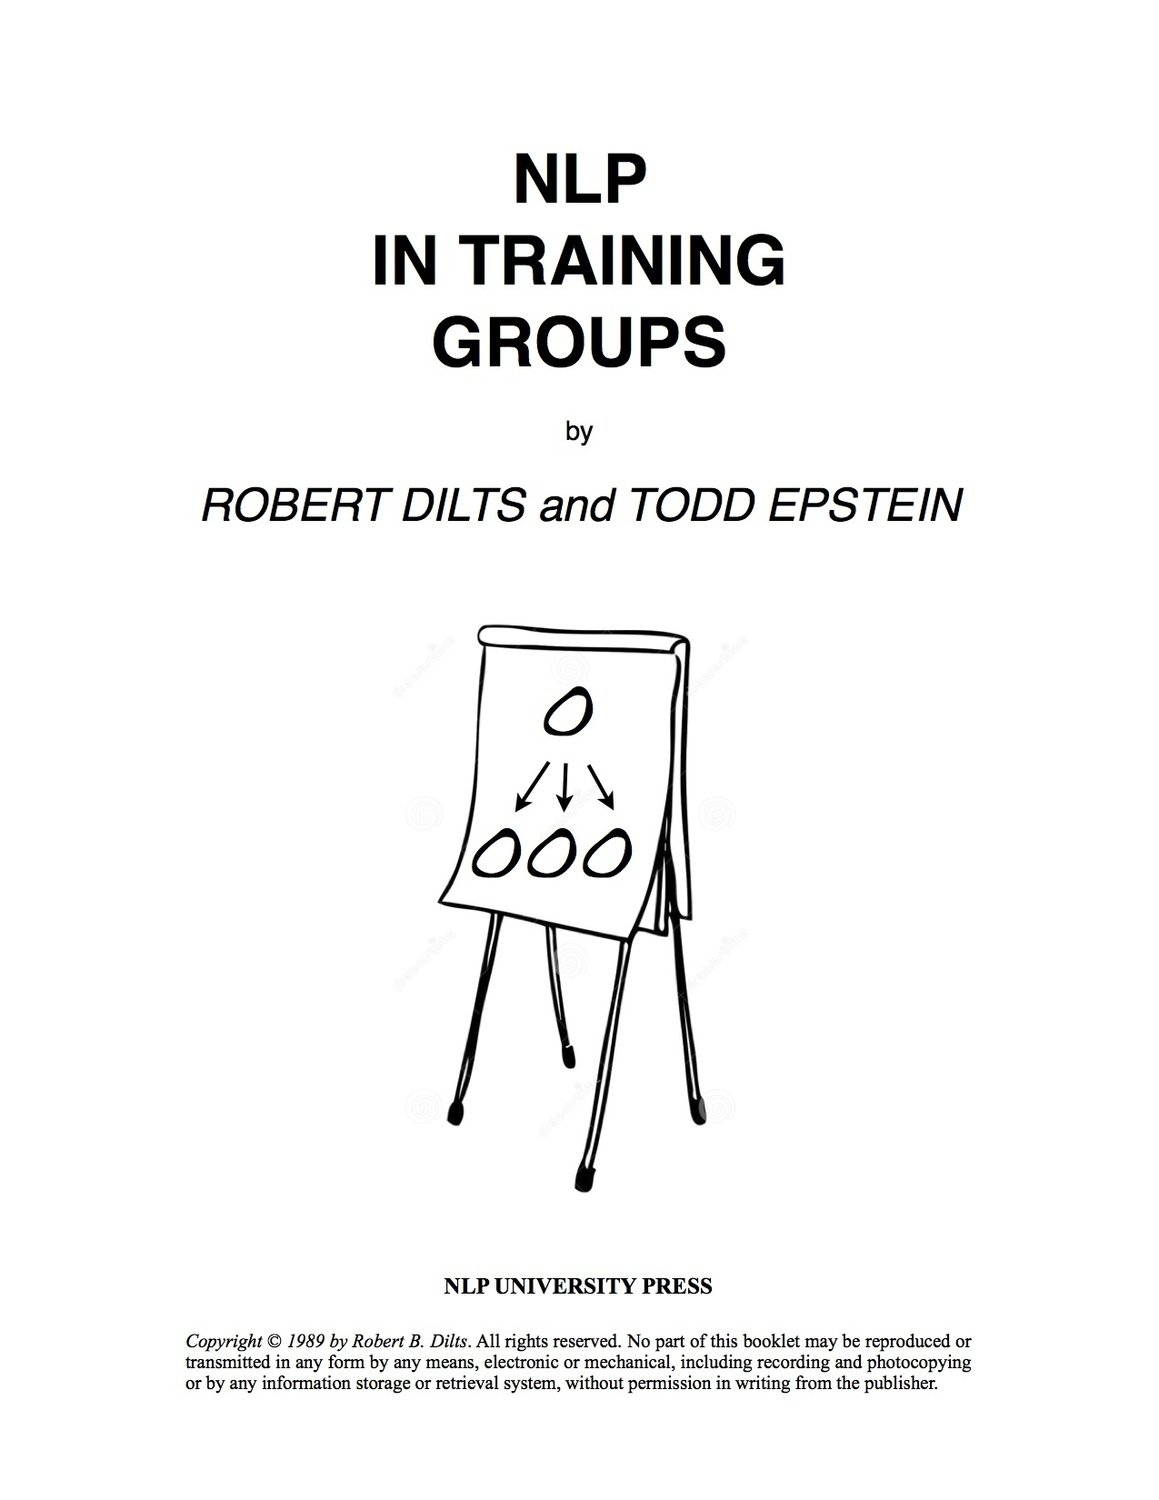 NLP in Training Groups